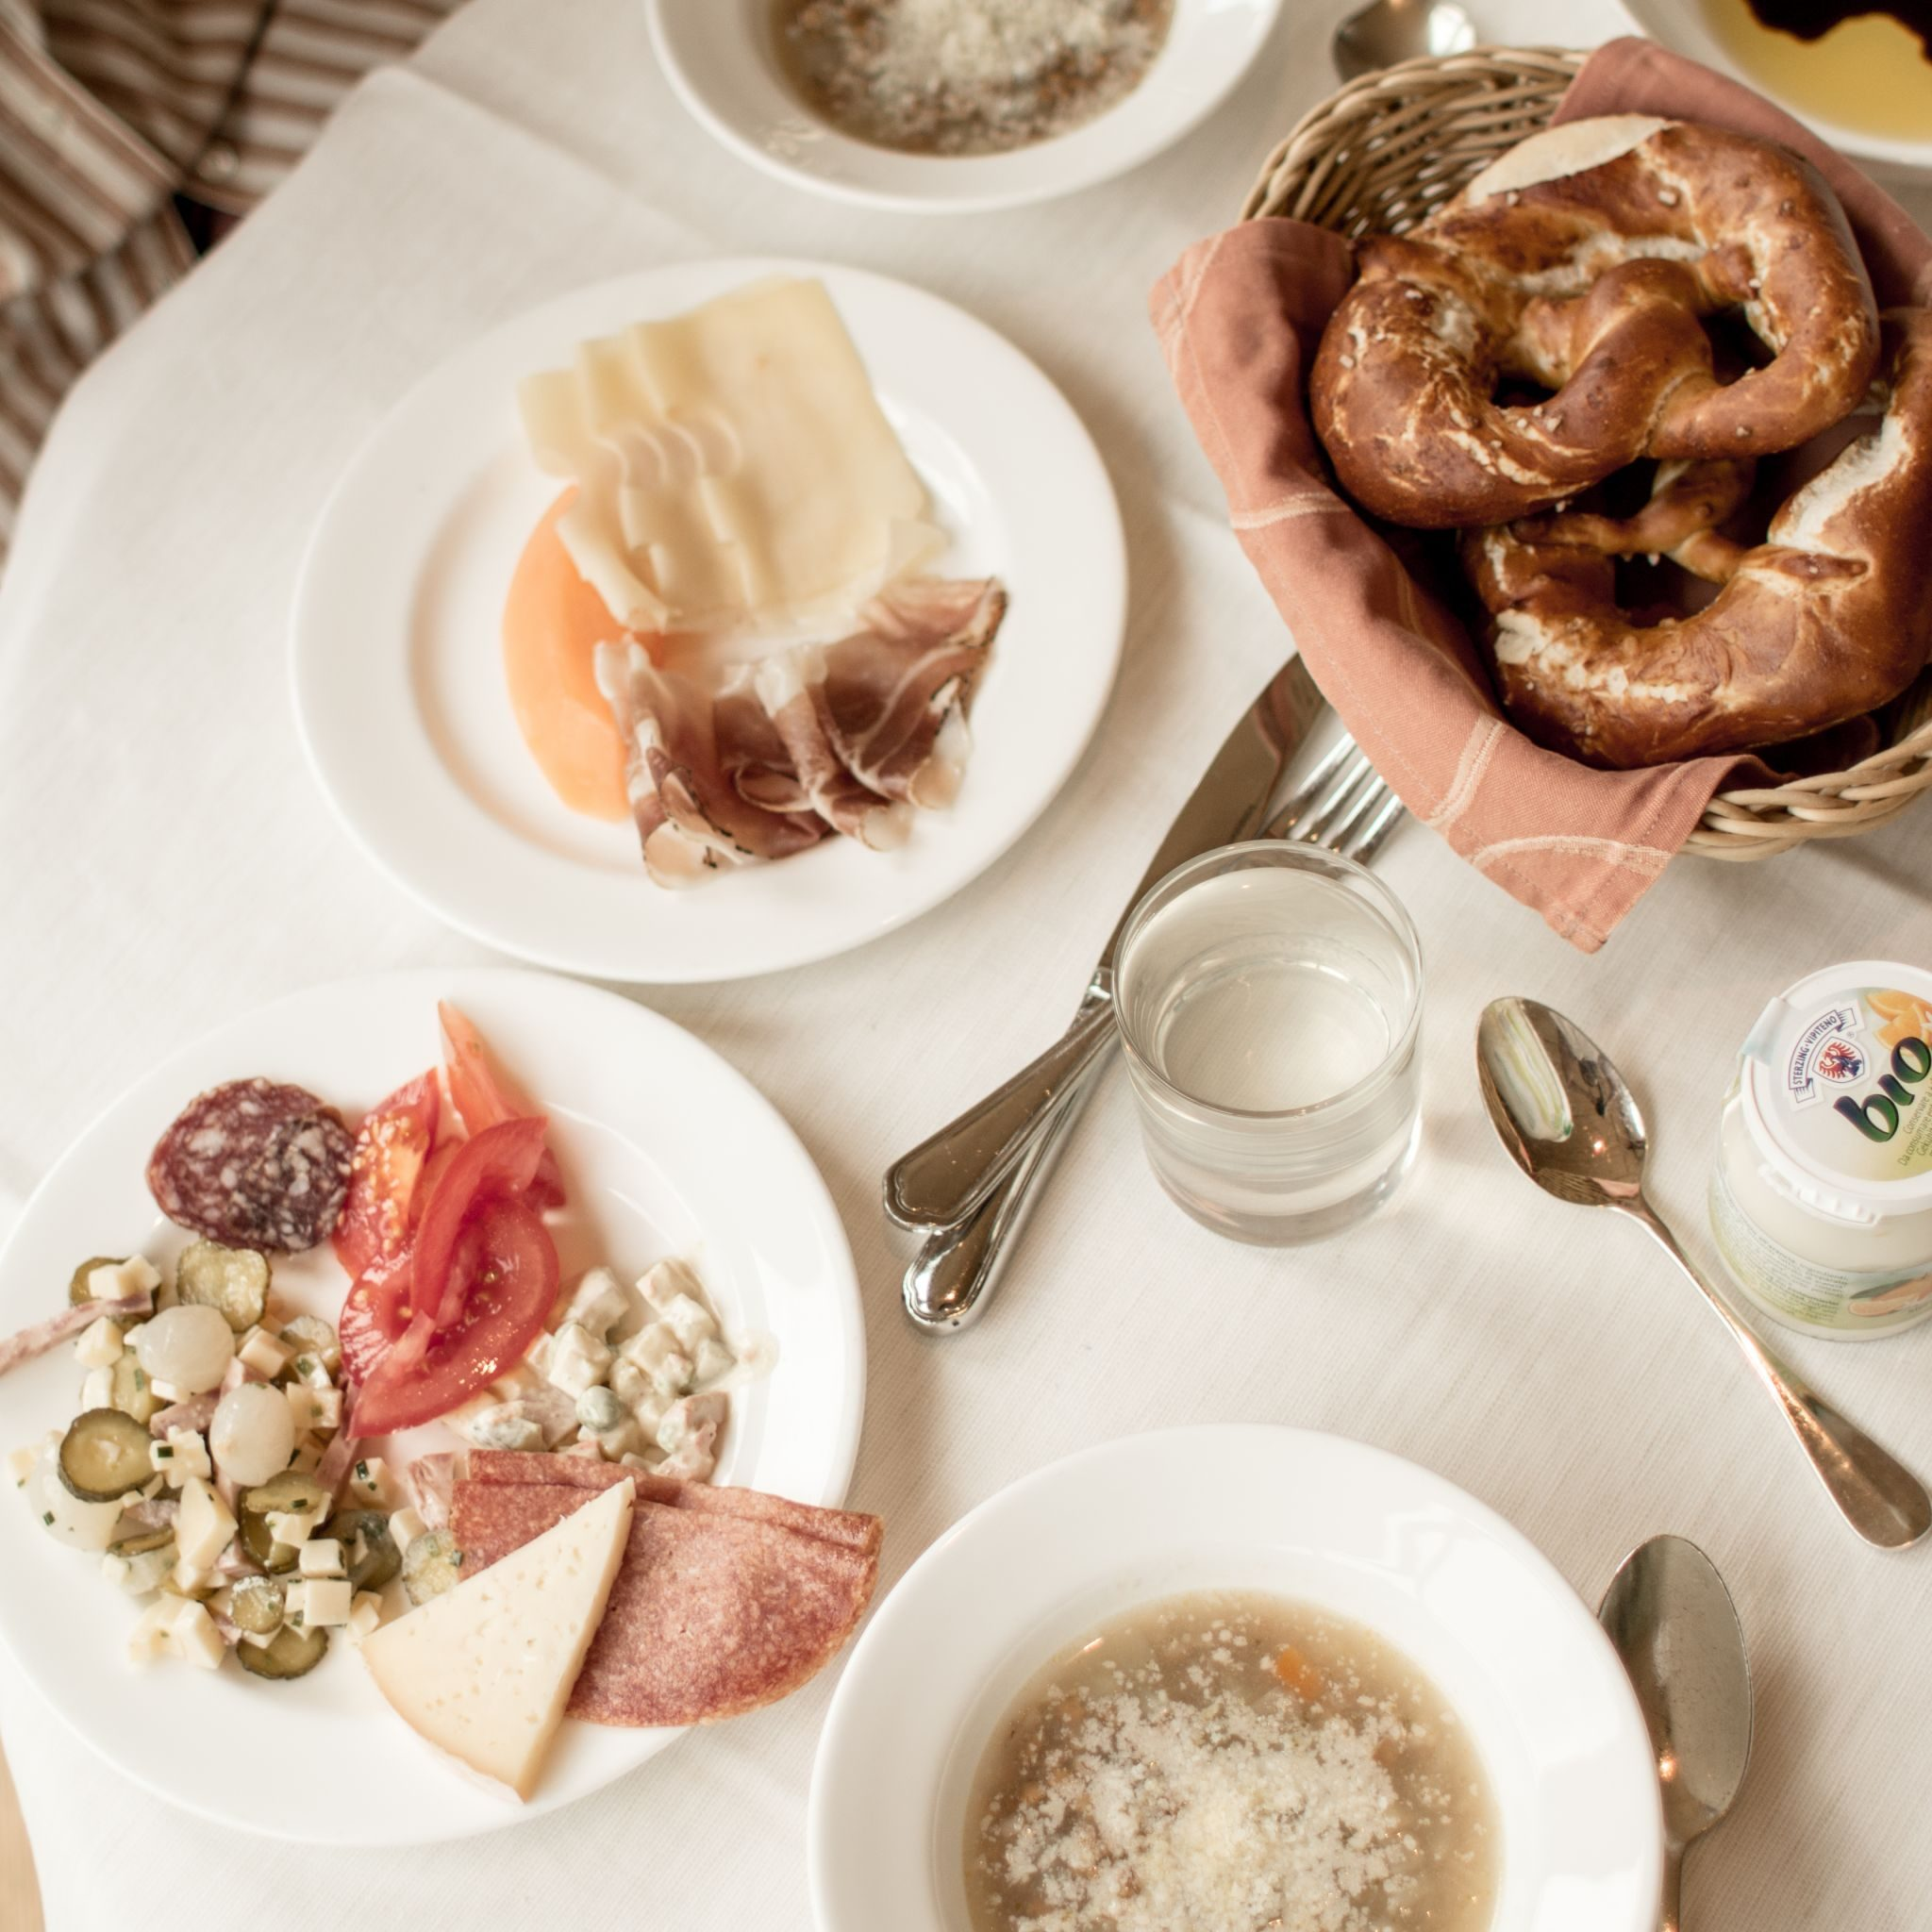 Adler Dolomites Hotel Ortisei Italy Hotel Review Lunch time